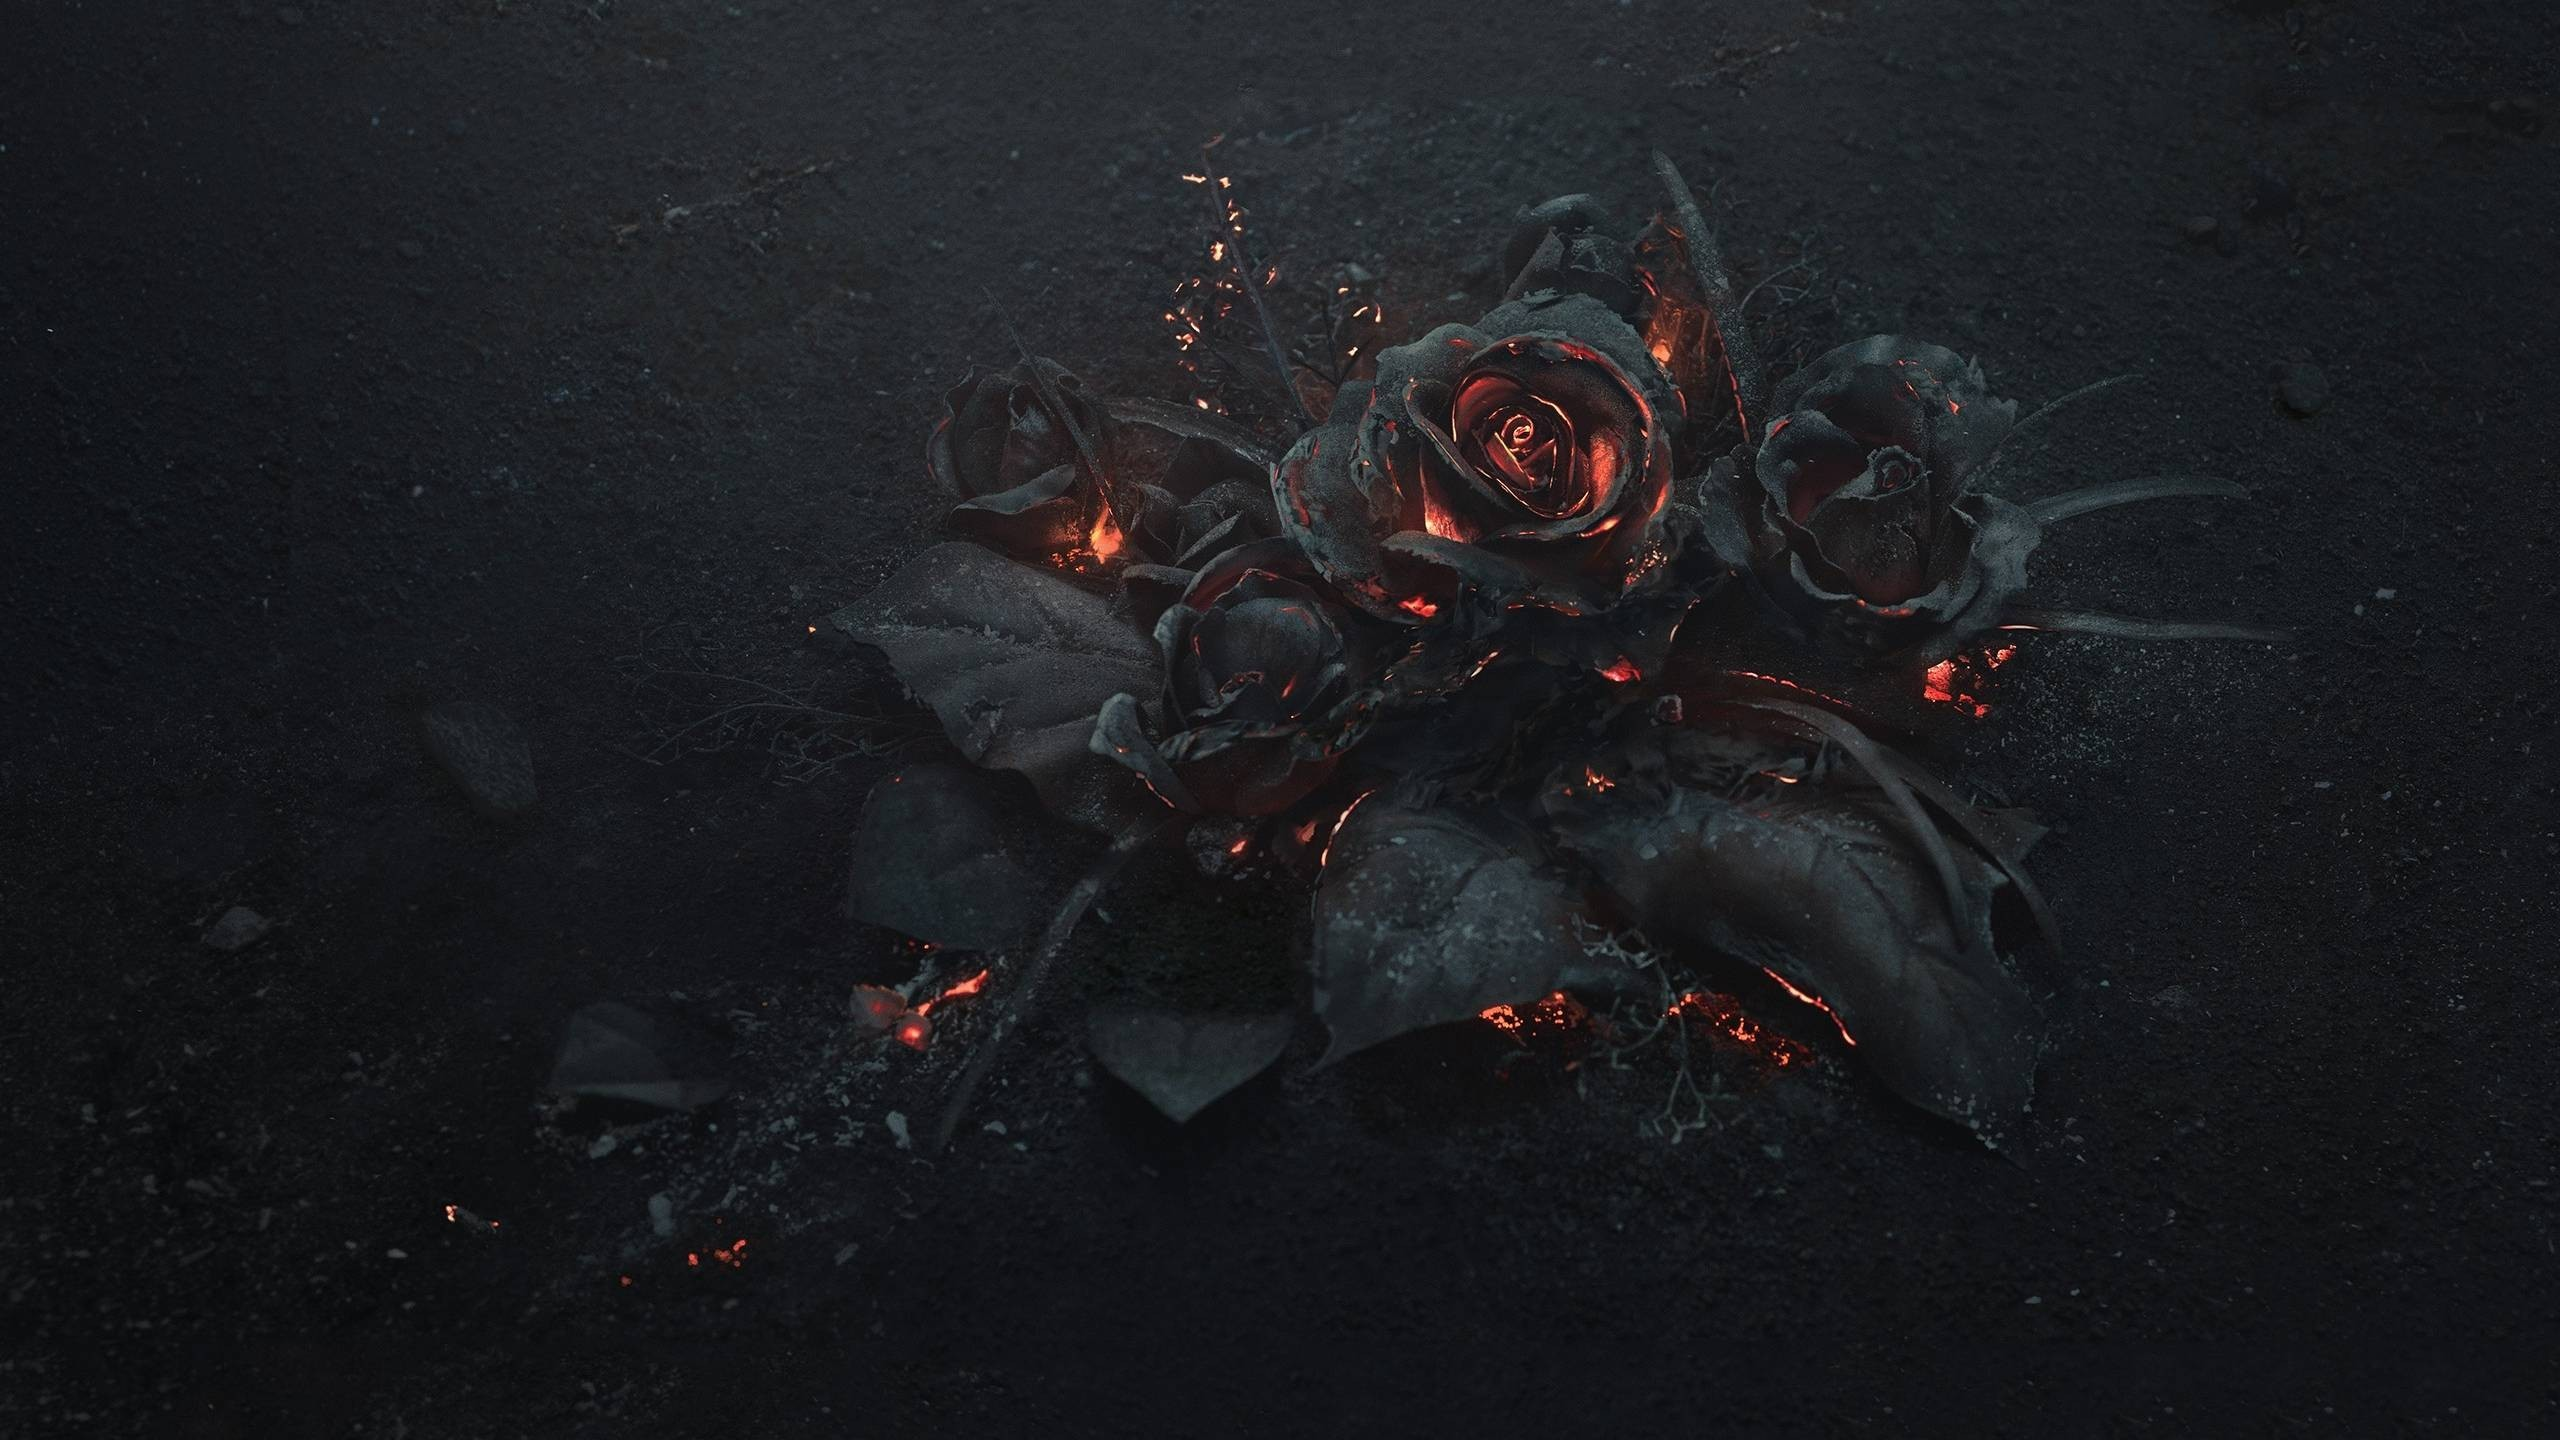 2560x1440 General  flowers rose fire Gothic